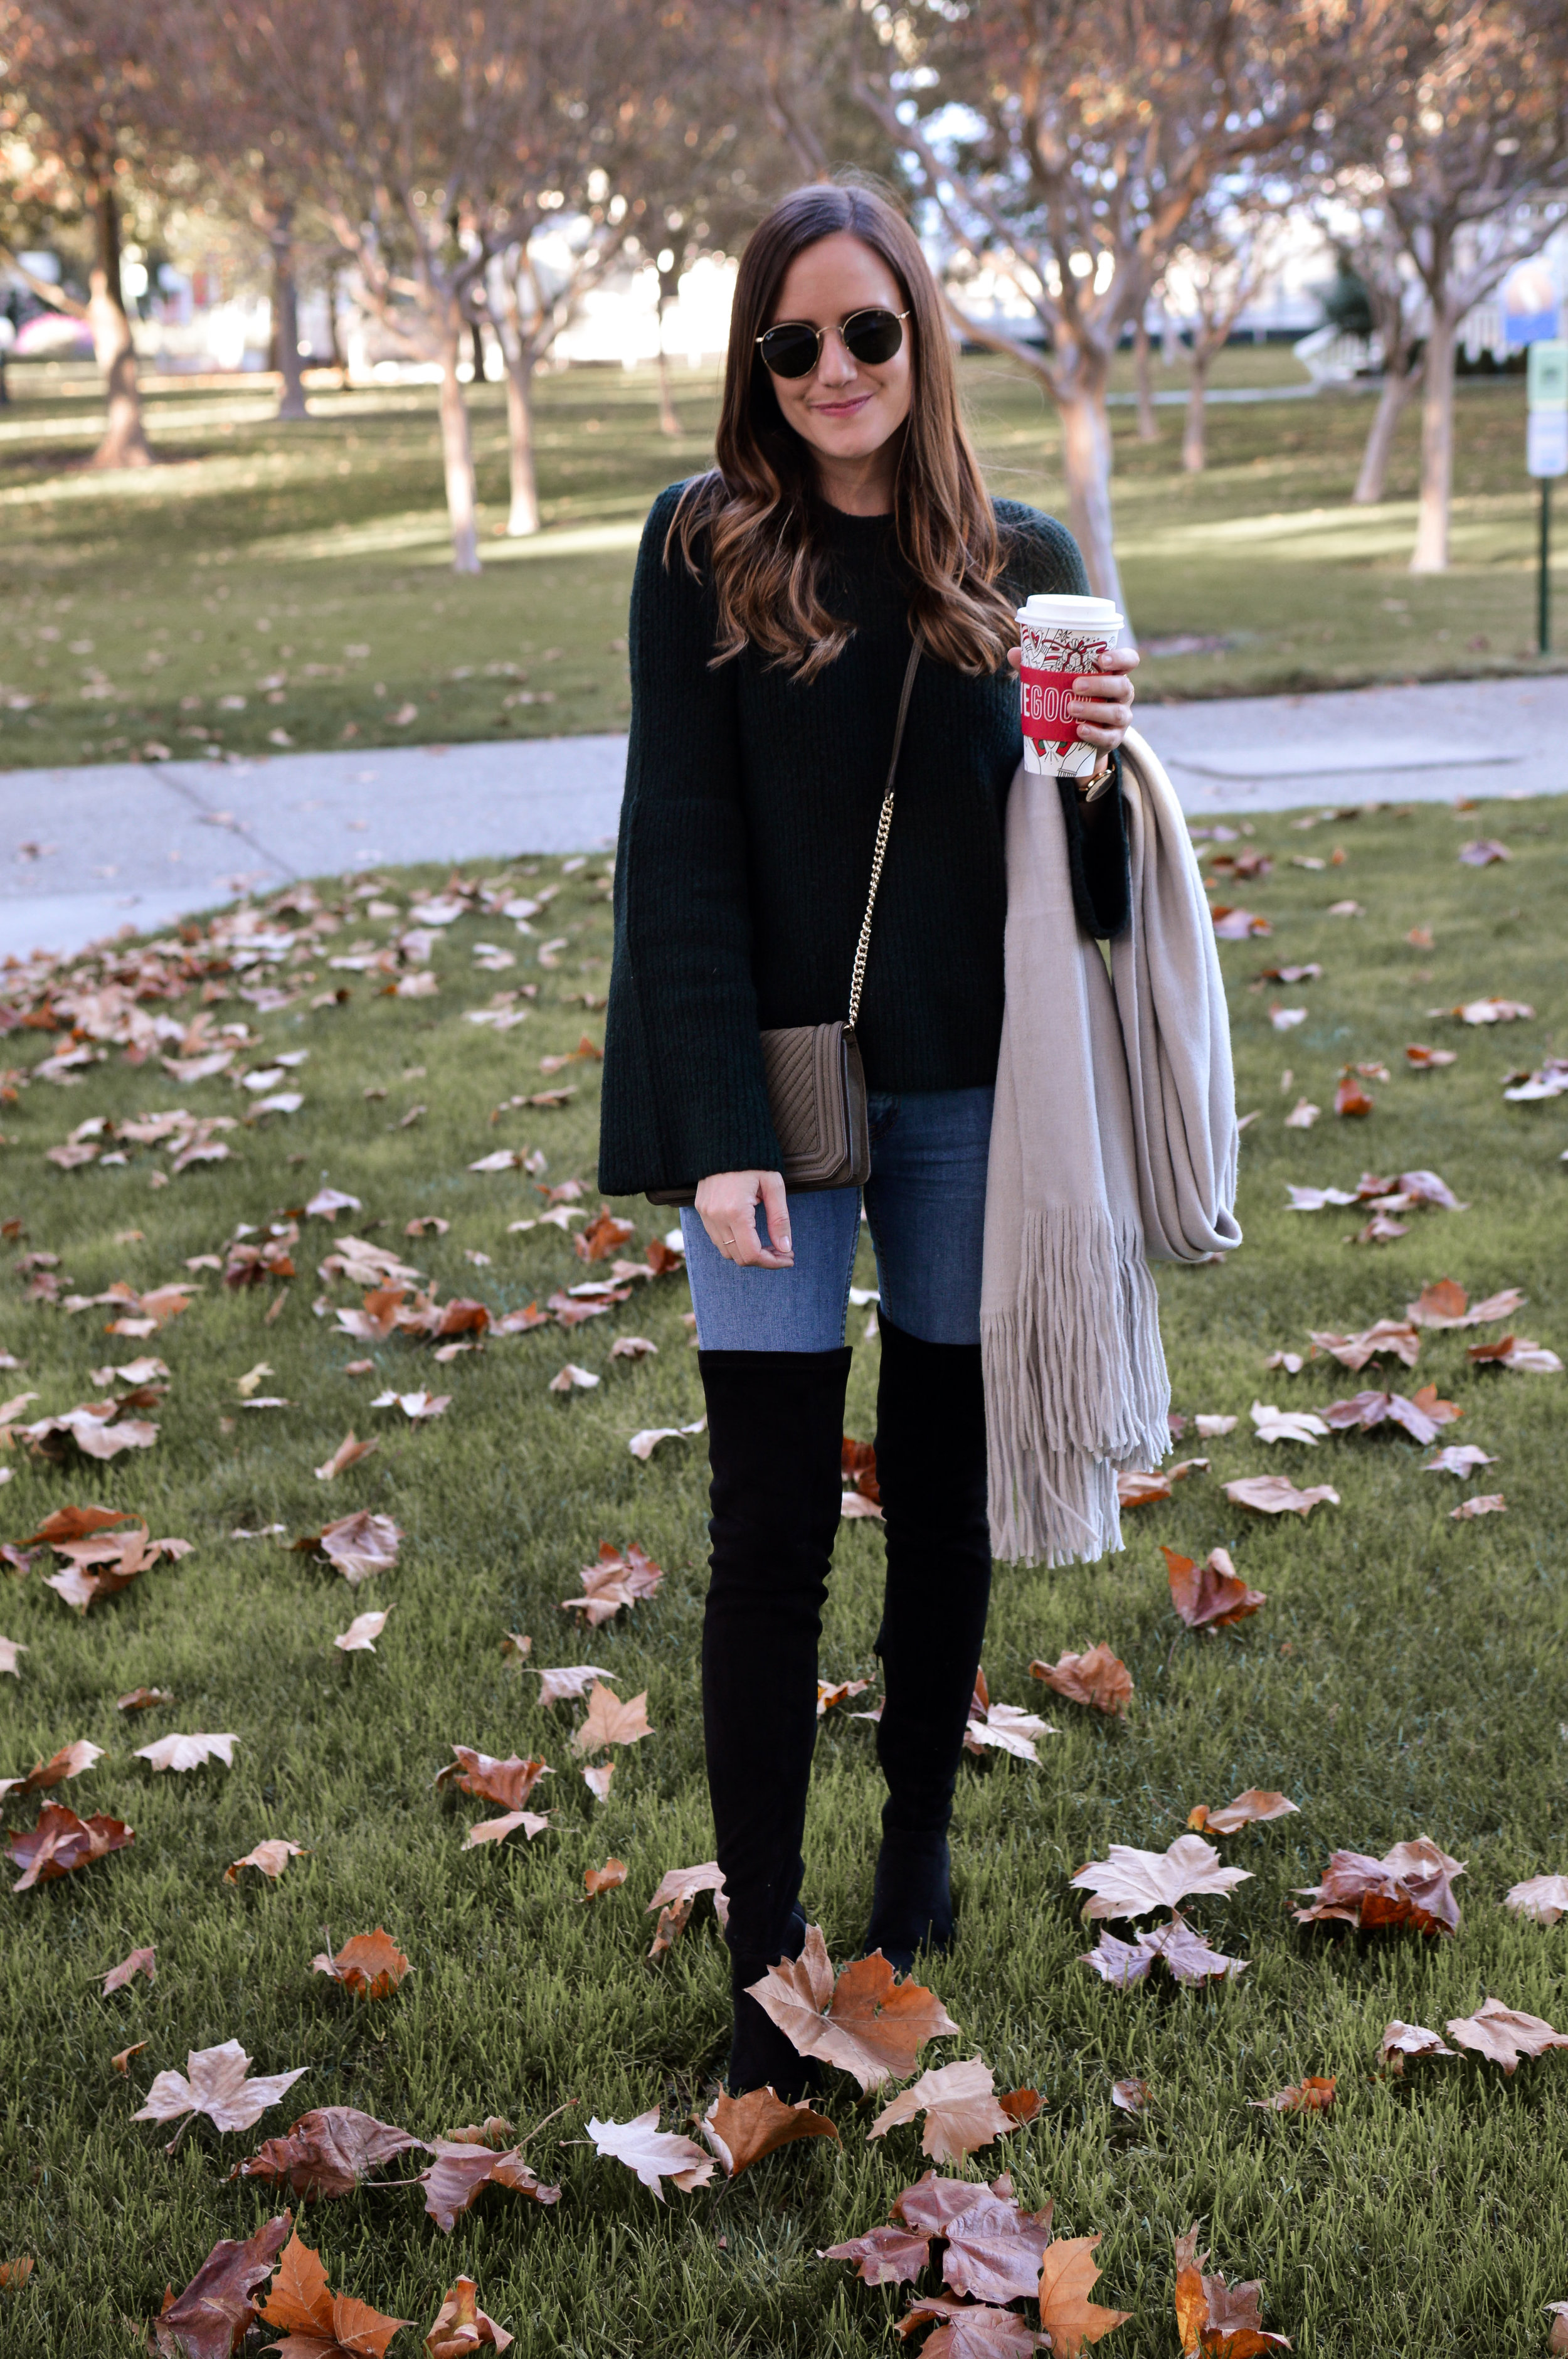 Shop the Look Below.  Madewell Sweater  |  Free People Jeans  |  Steve Madden Boots  |  Free People Scarf  |  Ray-Ban Sunglasses